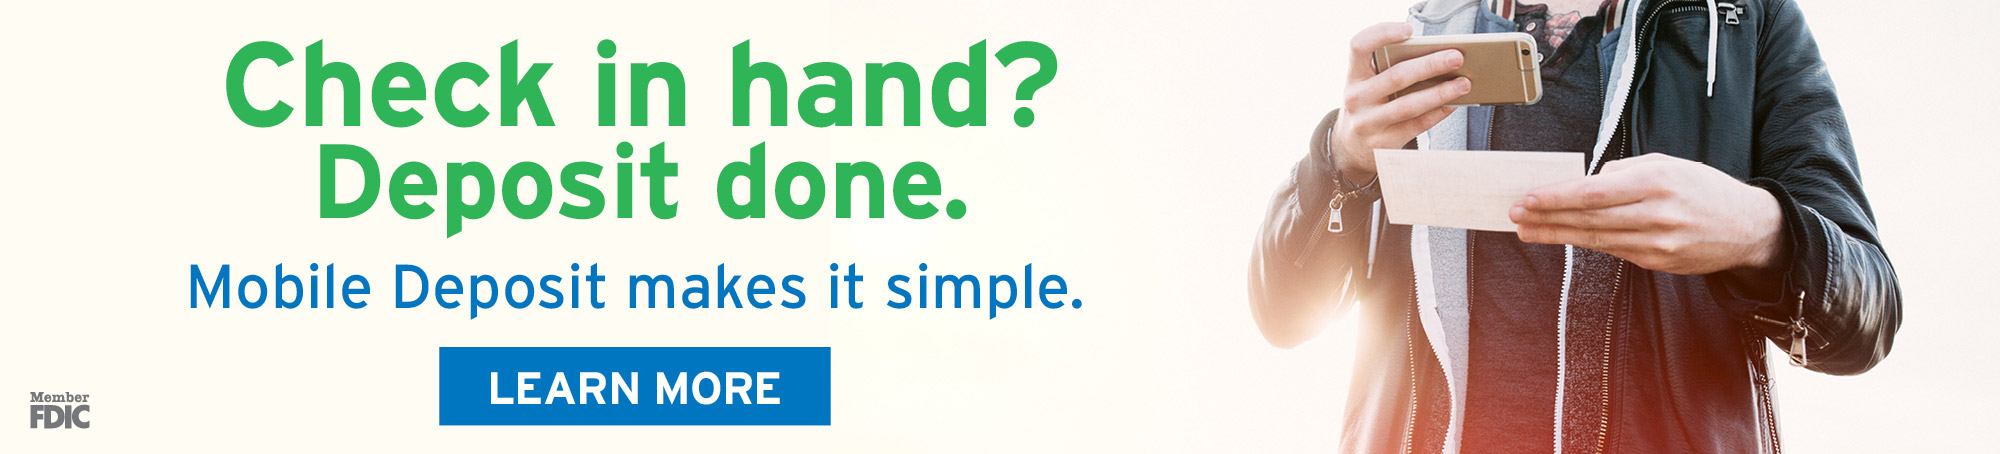 Check in hand? Deposit done. Mobile deposit makes it simple. Learn more Member FDIC